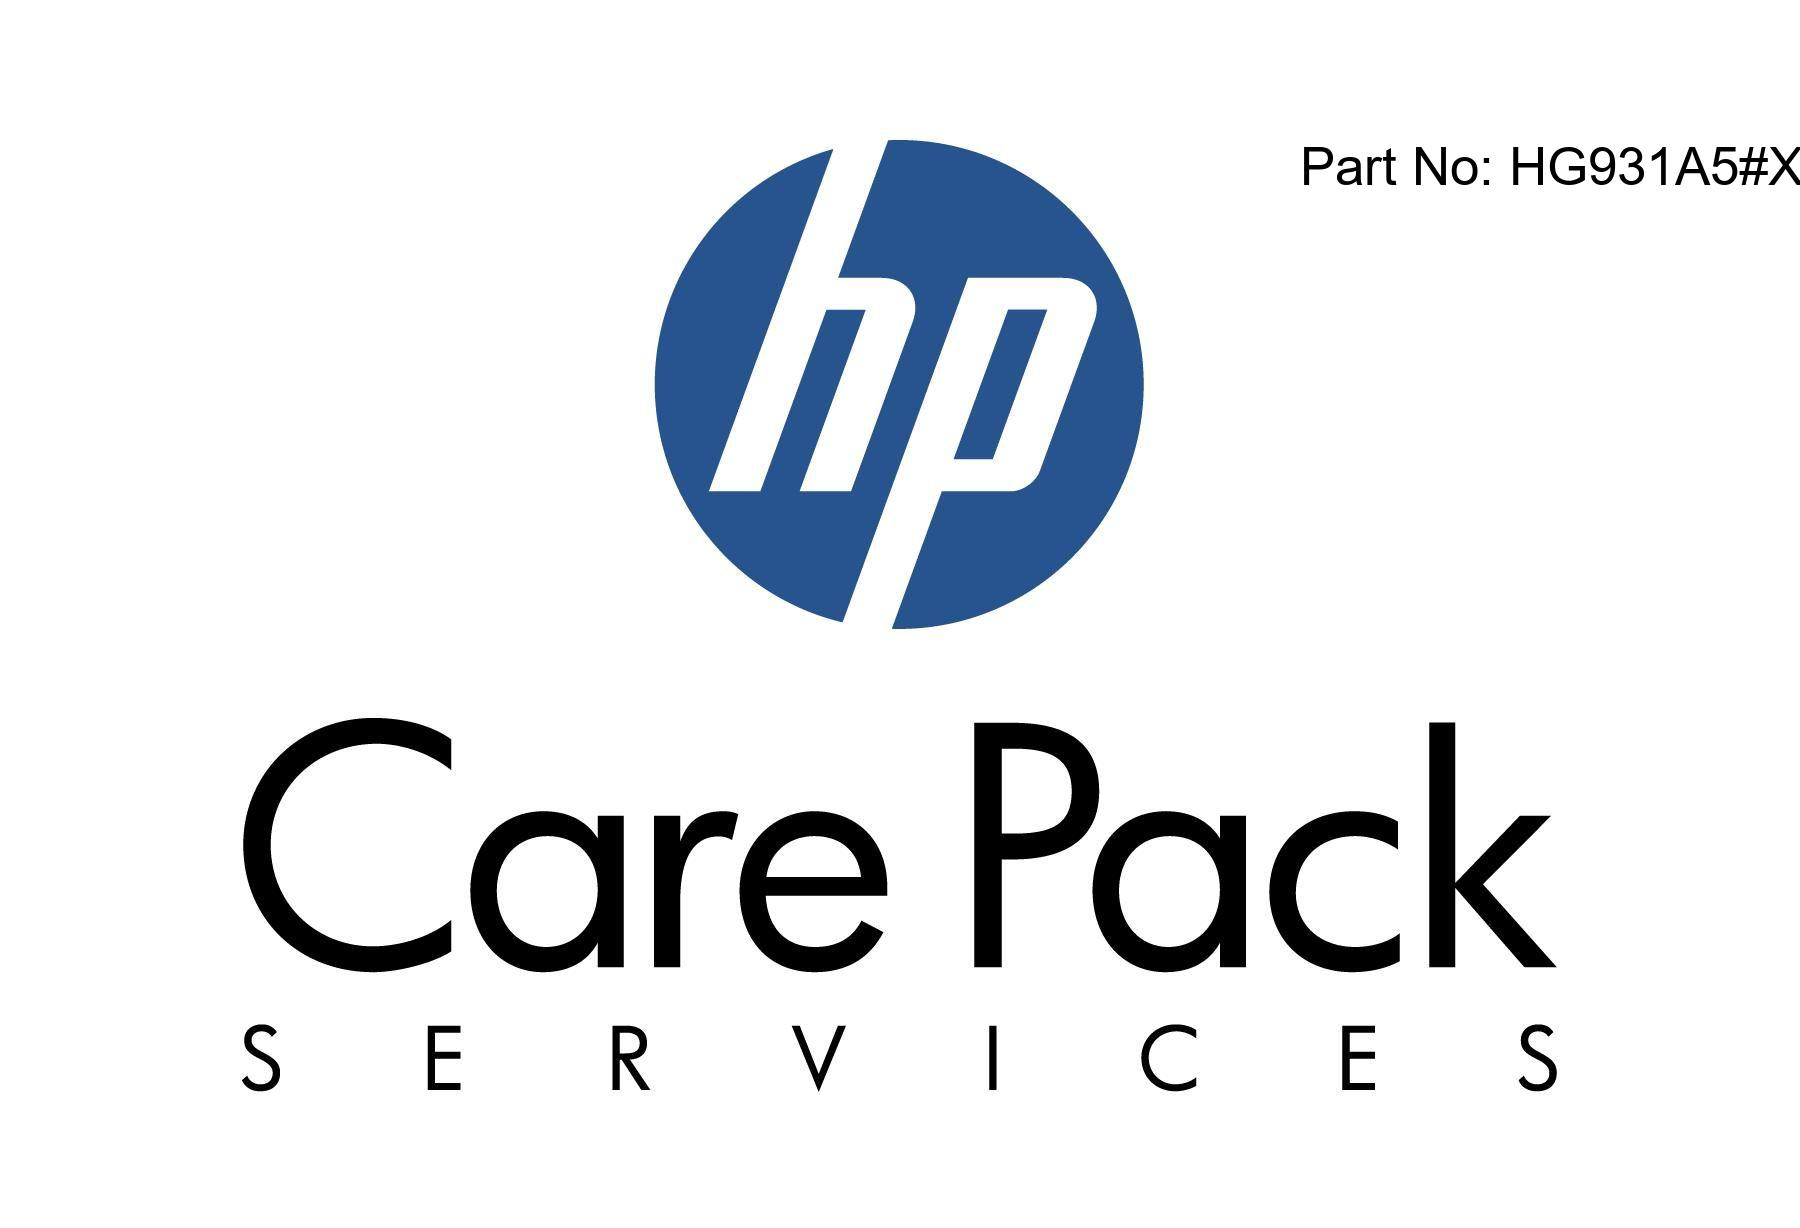 Proactive 24 with Defective Media Retention - Technical support - for HPE 3PAR 8440 Priority Optimization - 8 drives - phone consulting - 5 years - 24x7 - response time: 2 h